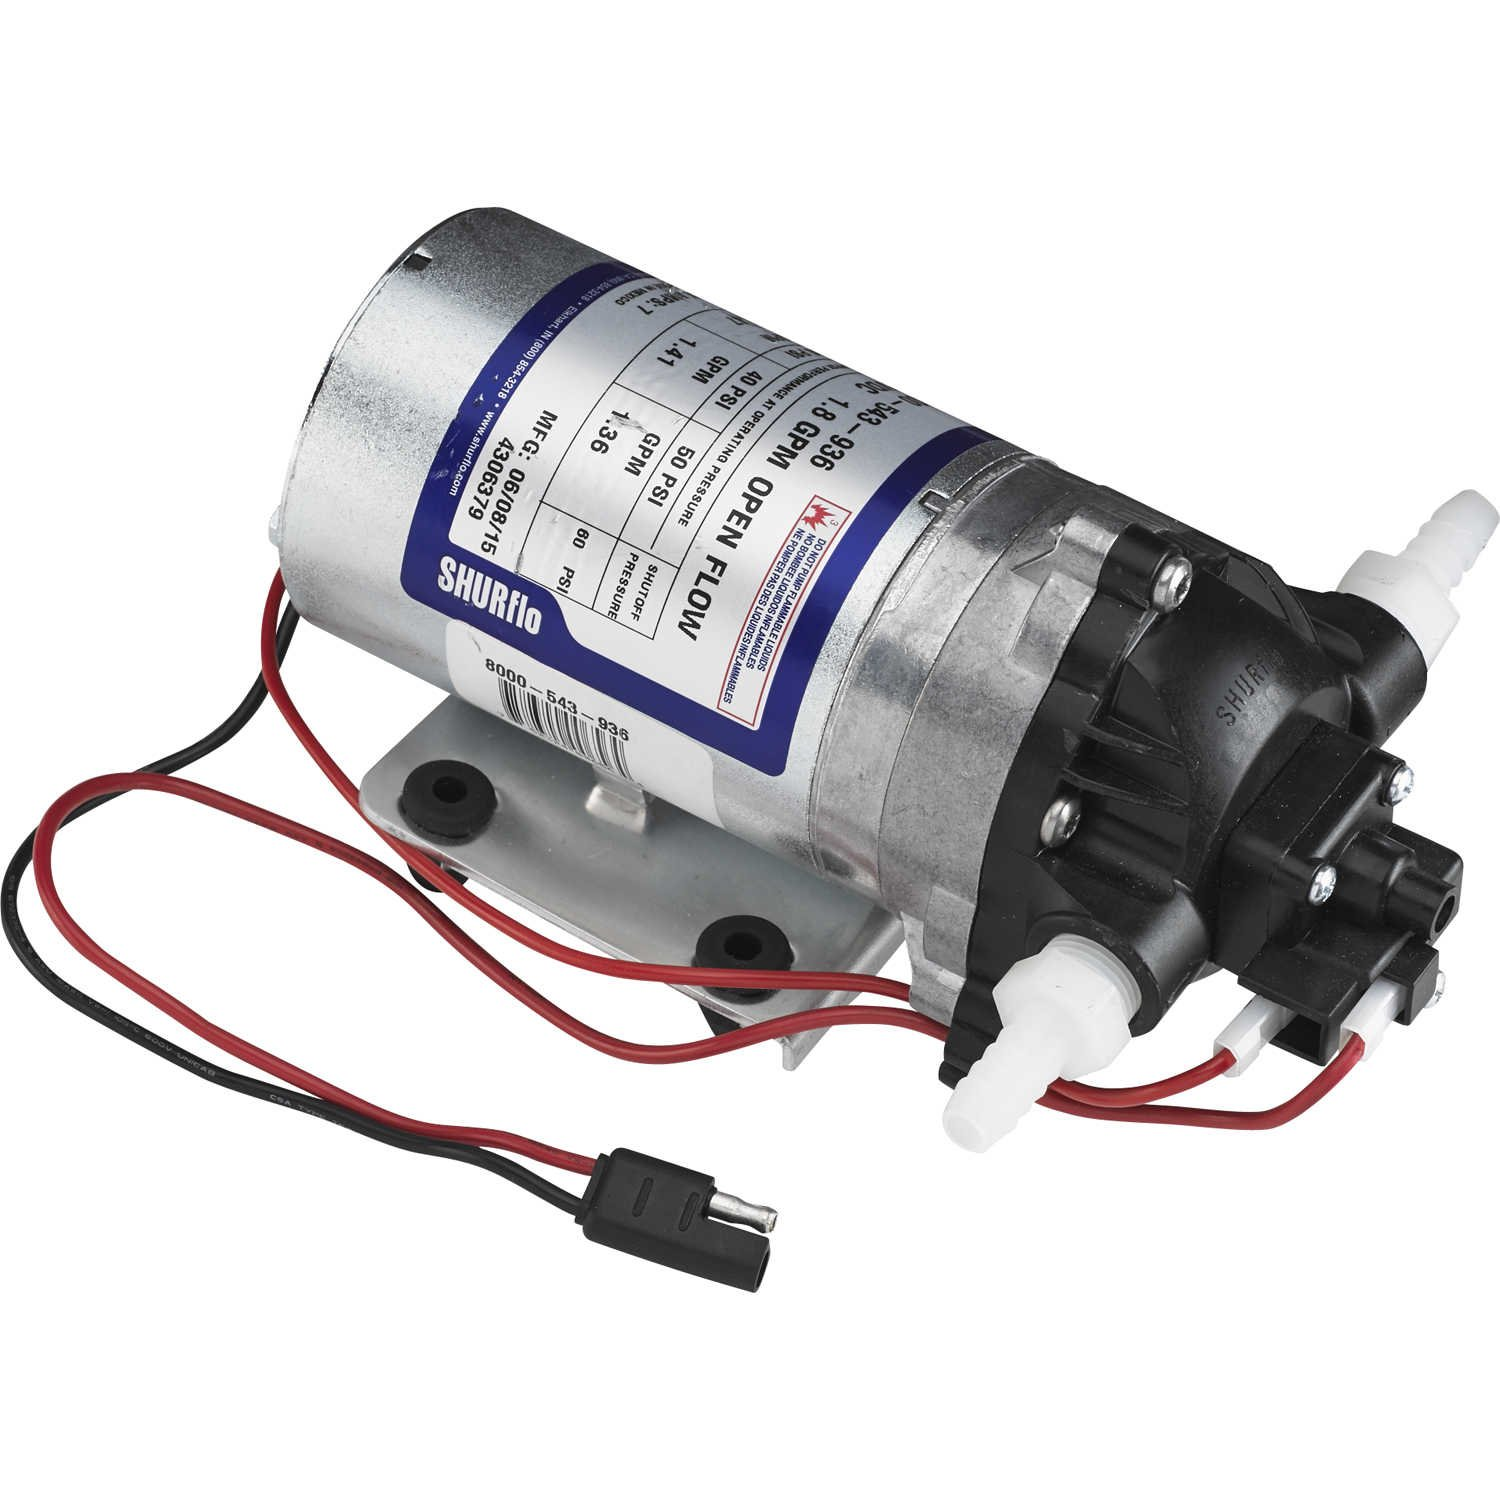 Shurflo 12V DC Standard Pump with Wire Harness, 1.8 GPM, 50 PSI